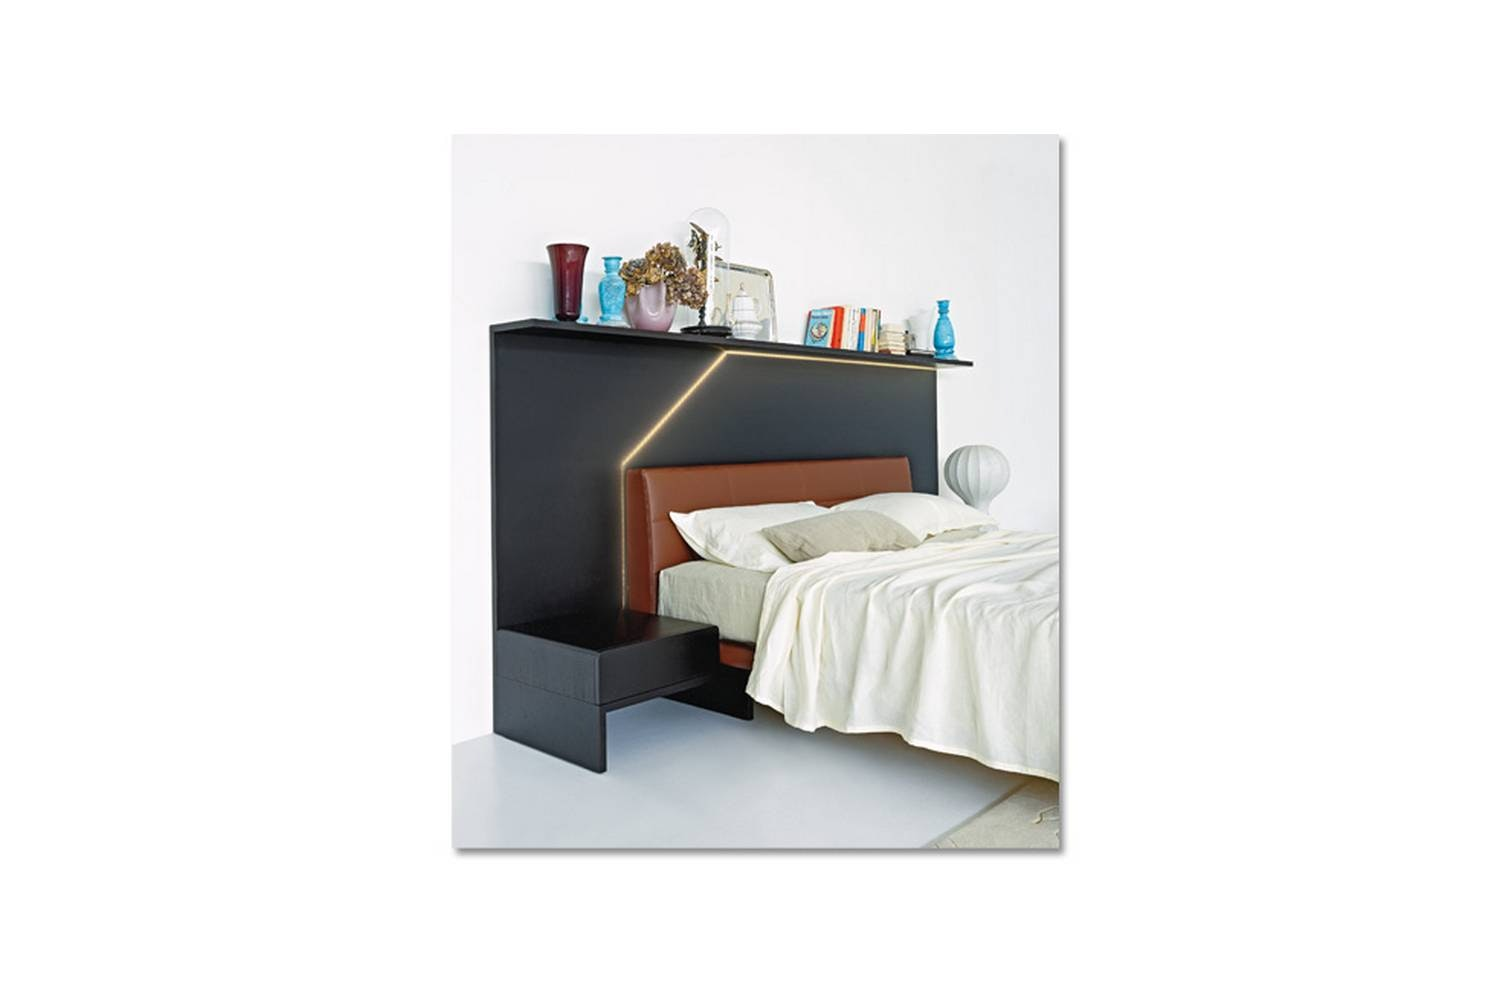 Ledletto Bed by Cini Boeri for Arflex